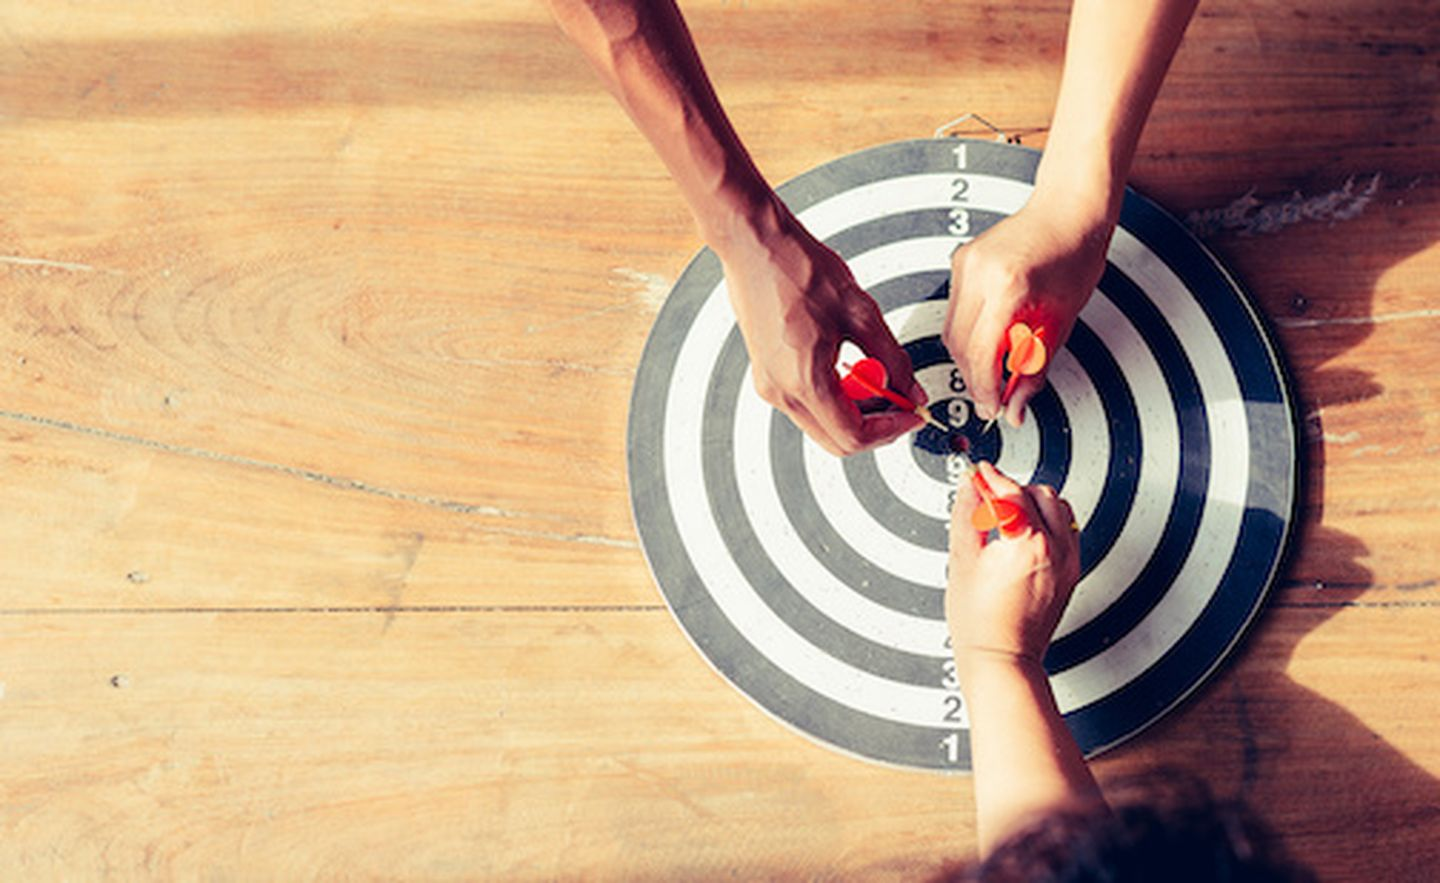 Meaningful target of business dart is an opportunity and dartboard is the target and goal business marketing as concept